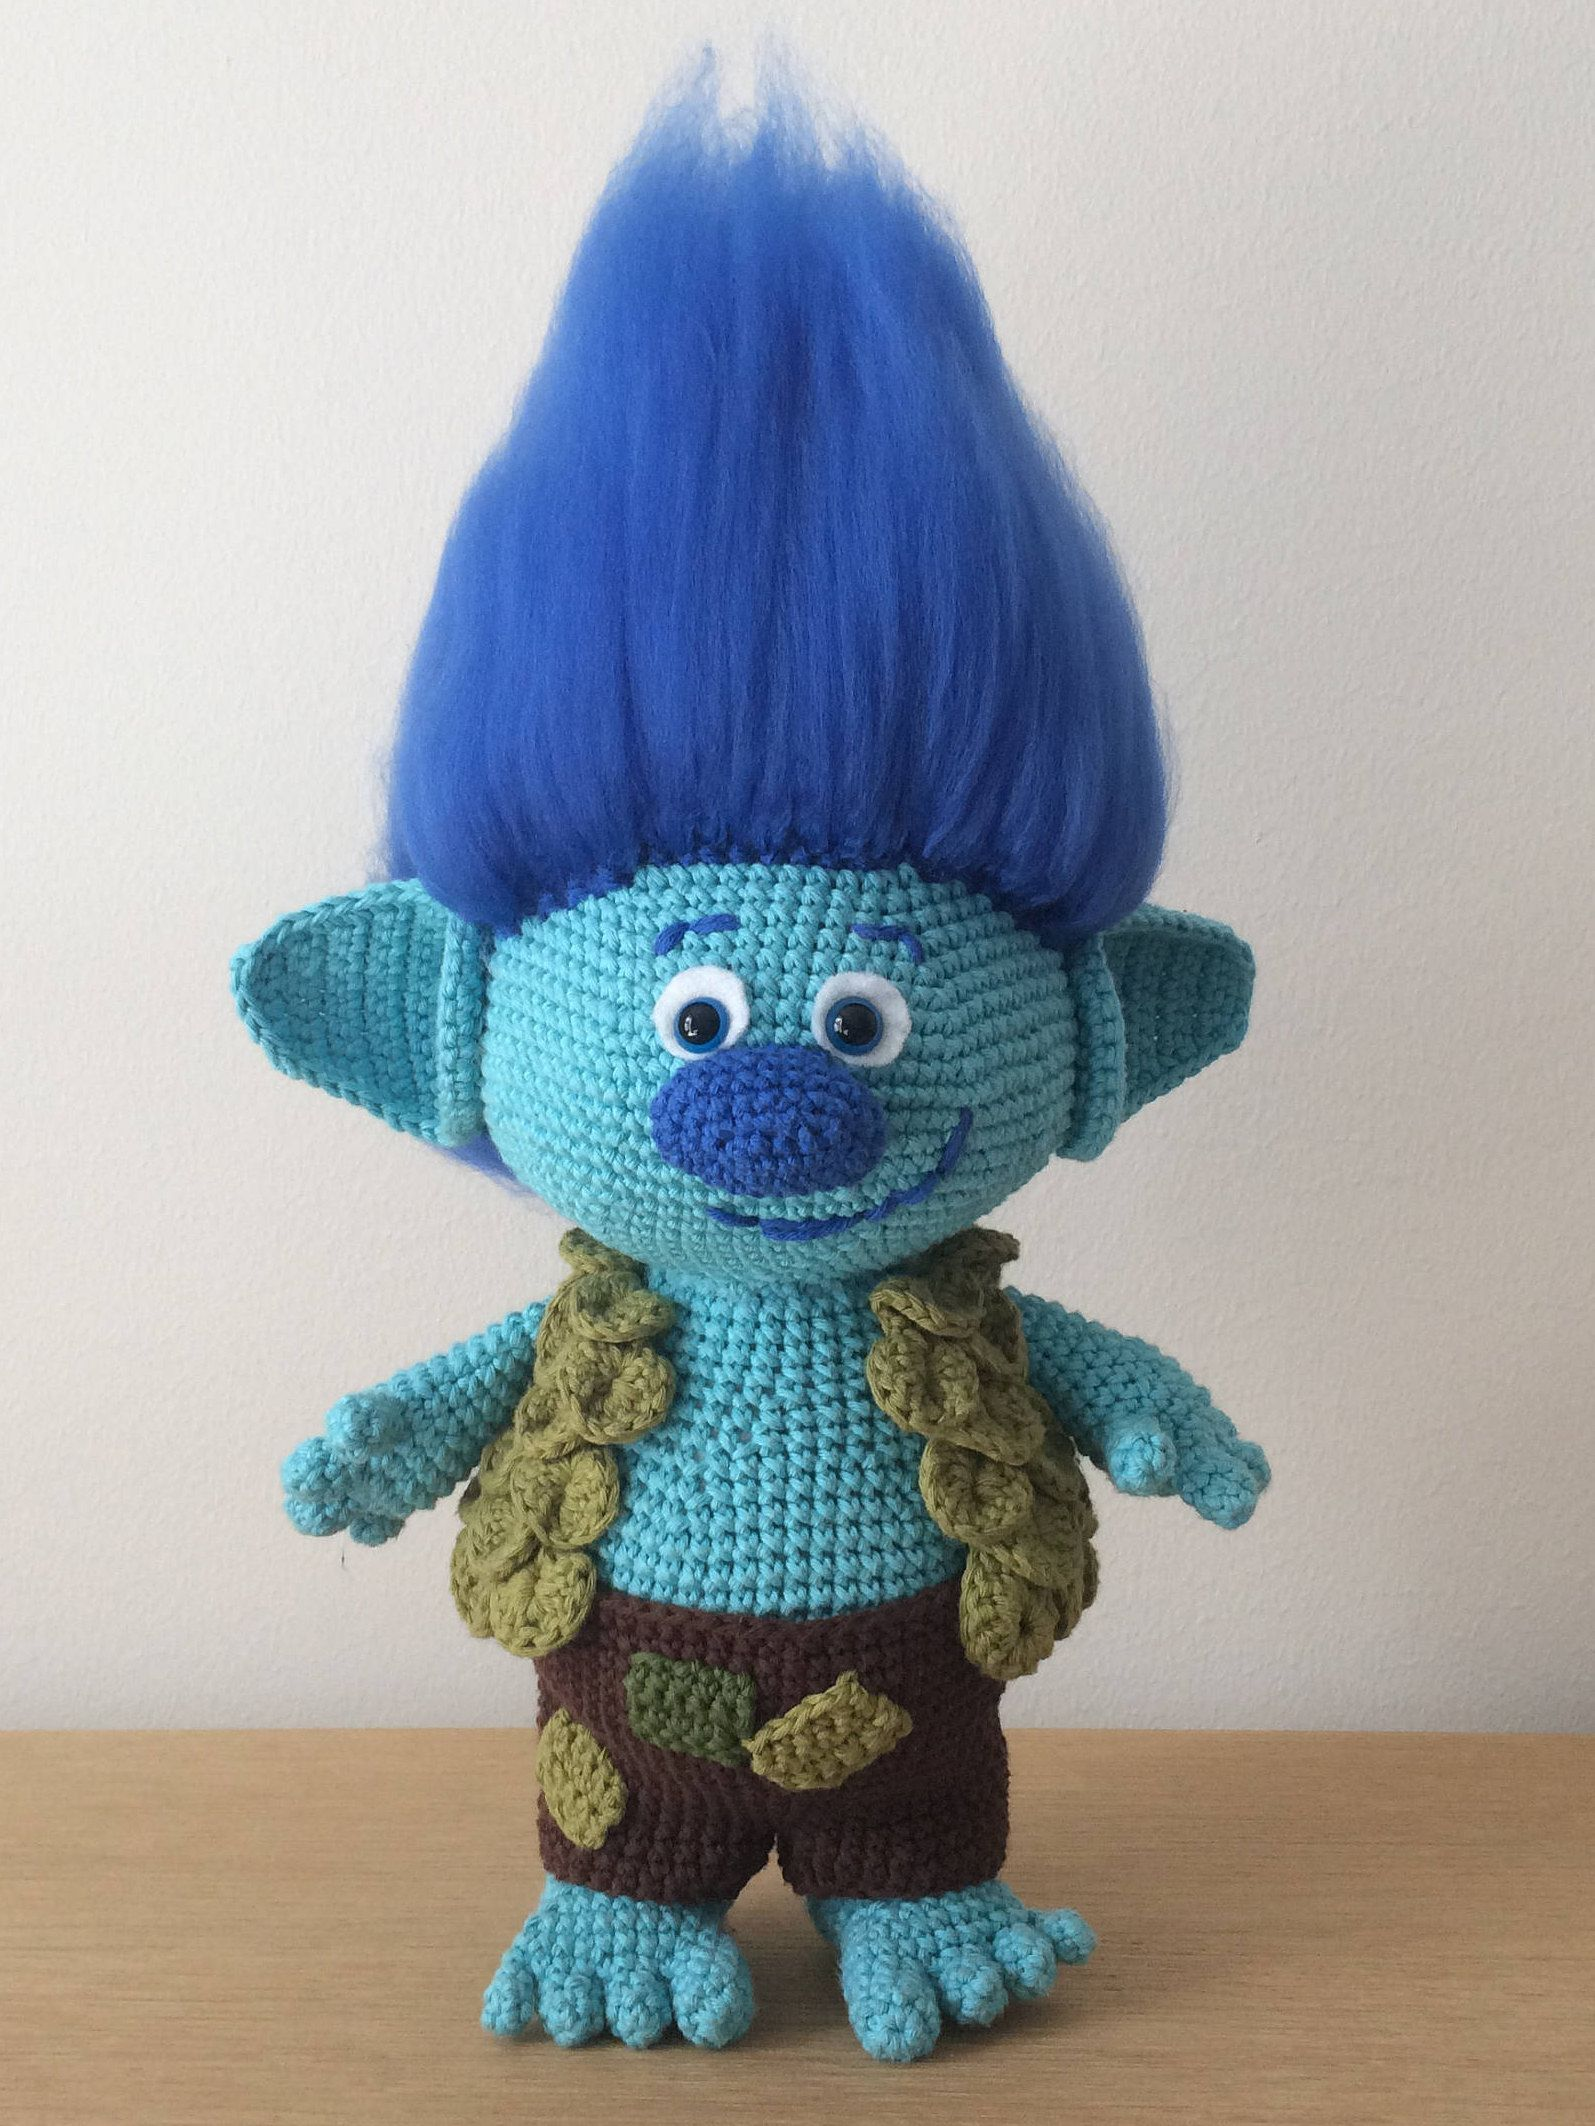 Trolls Crochet Pattern Unique Inspiration Design